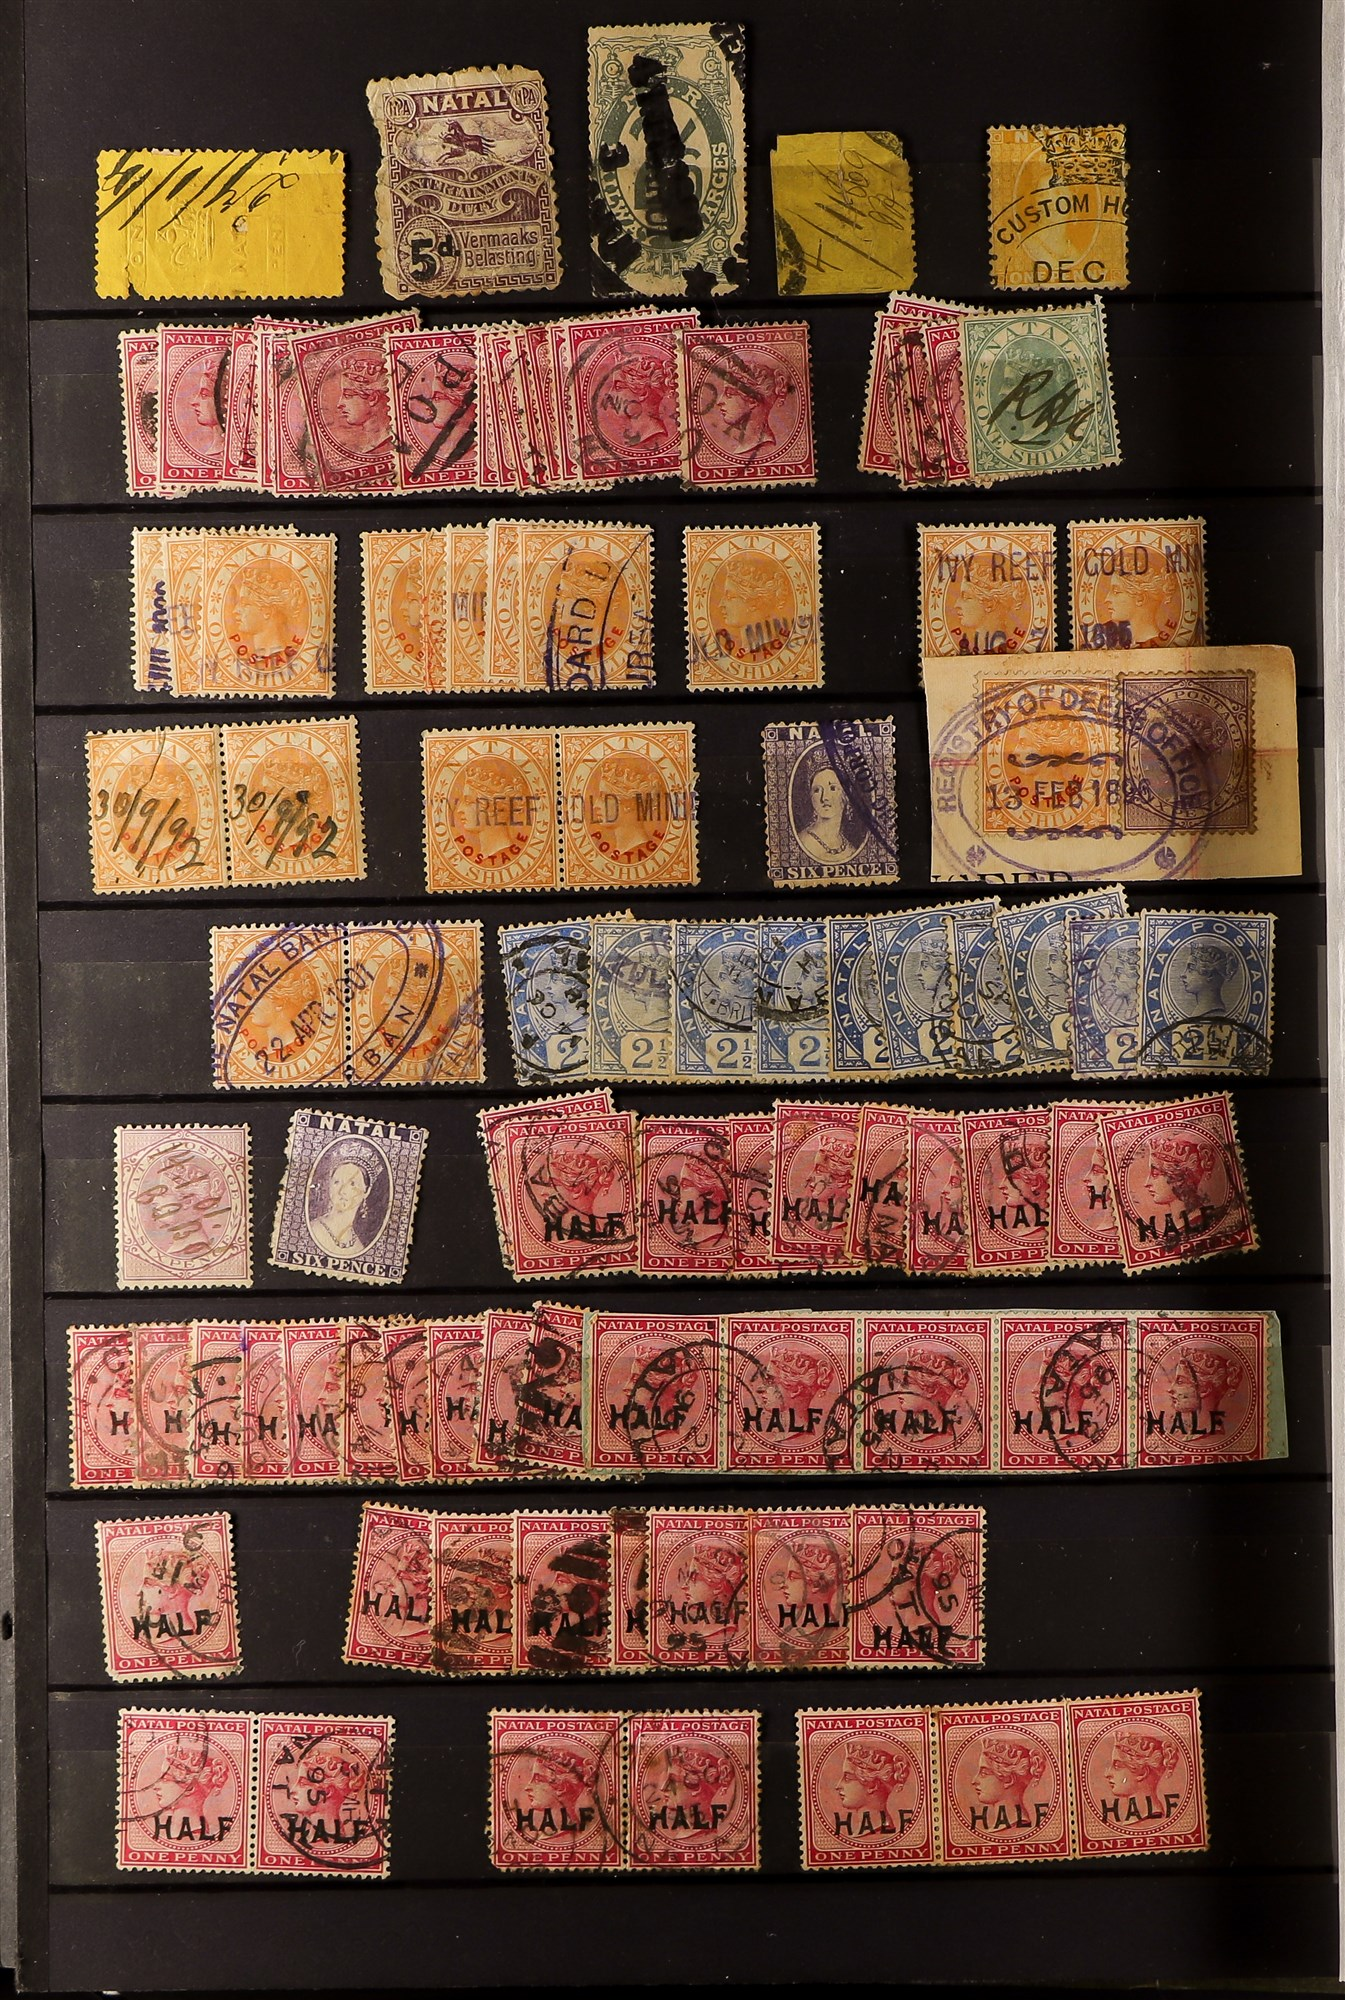 SOUTH AFRICA -COLS & REPS NATAL 1859-1899 collection with values to 5s (mostly used), 1860 rough